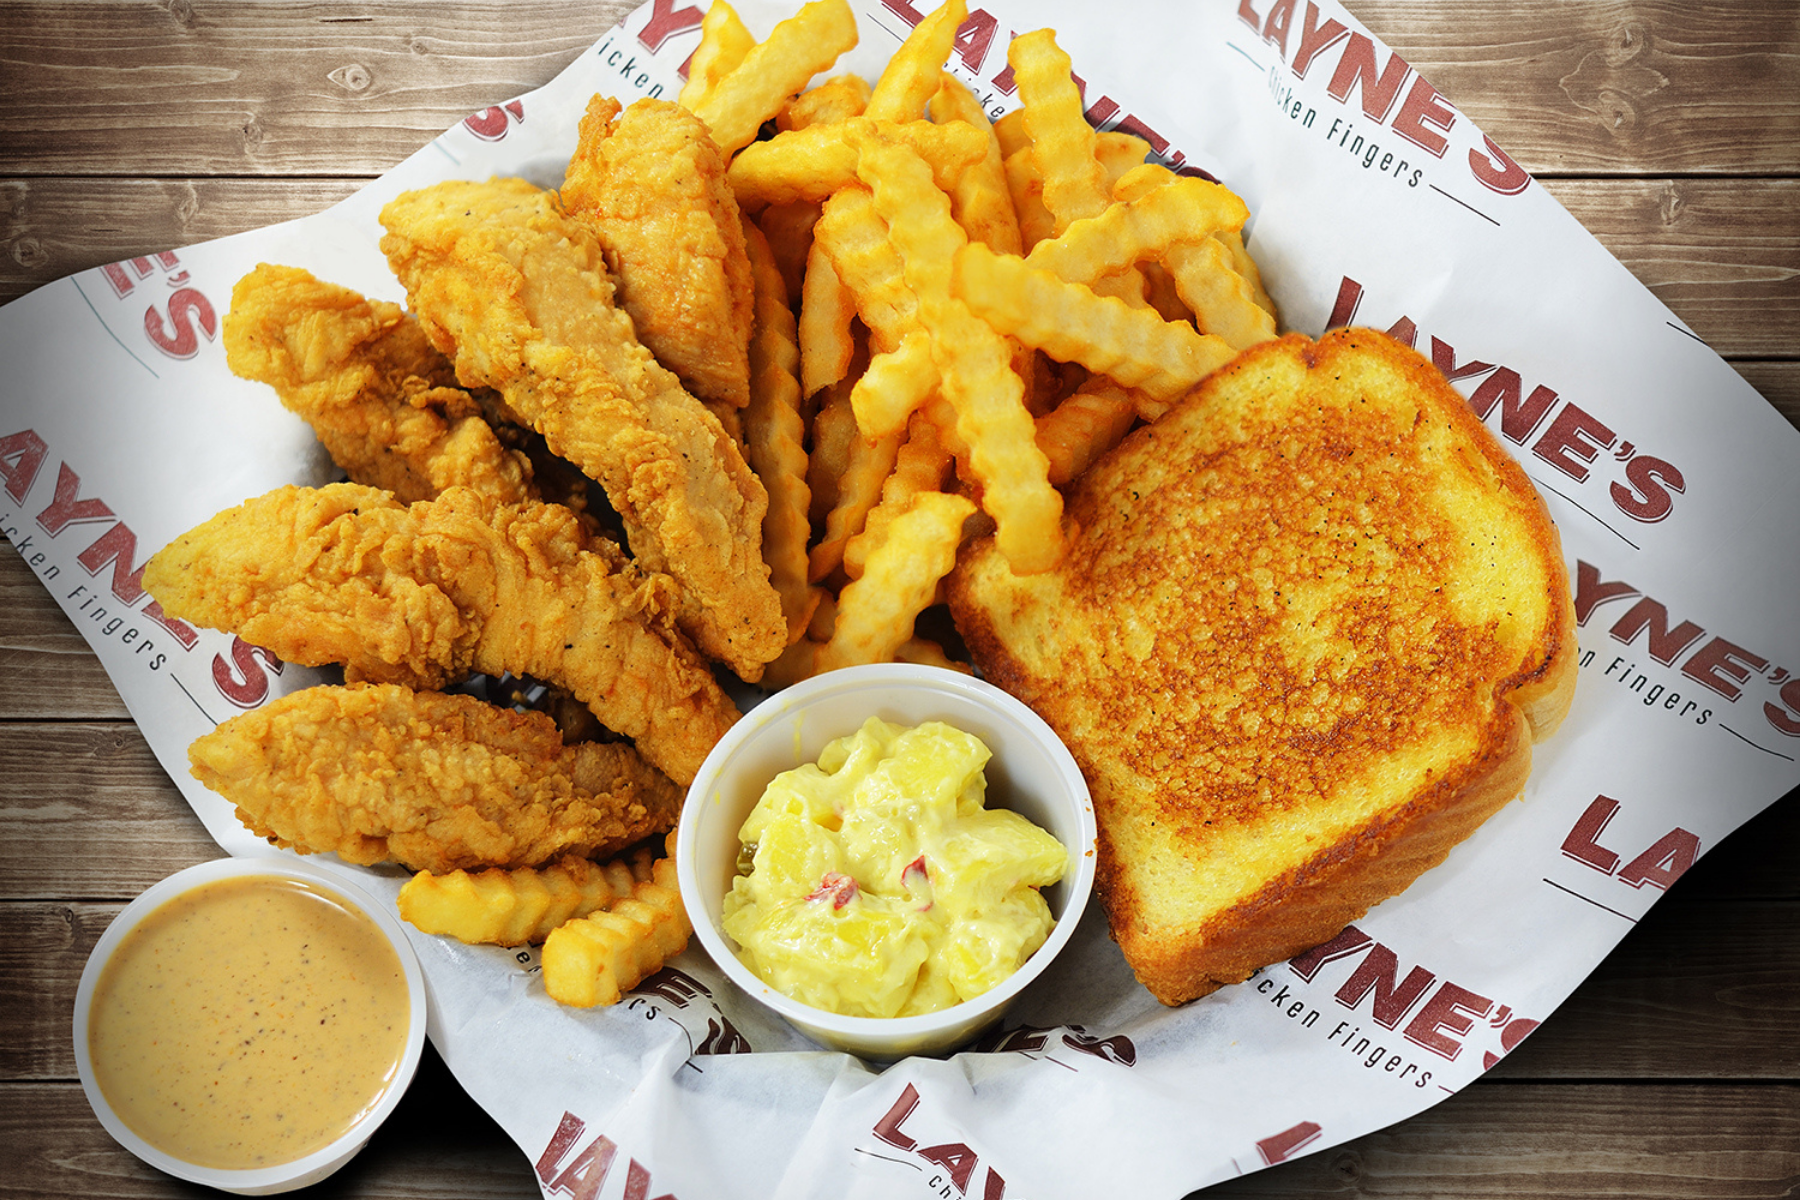 Texas A&M Chicken Favorite Turns to Franchising with Frisco as its Corporate Base - D Magazine